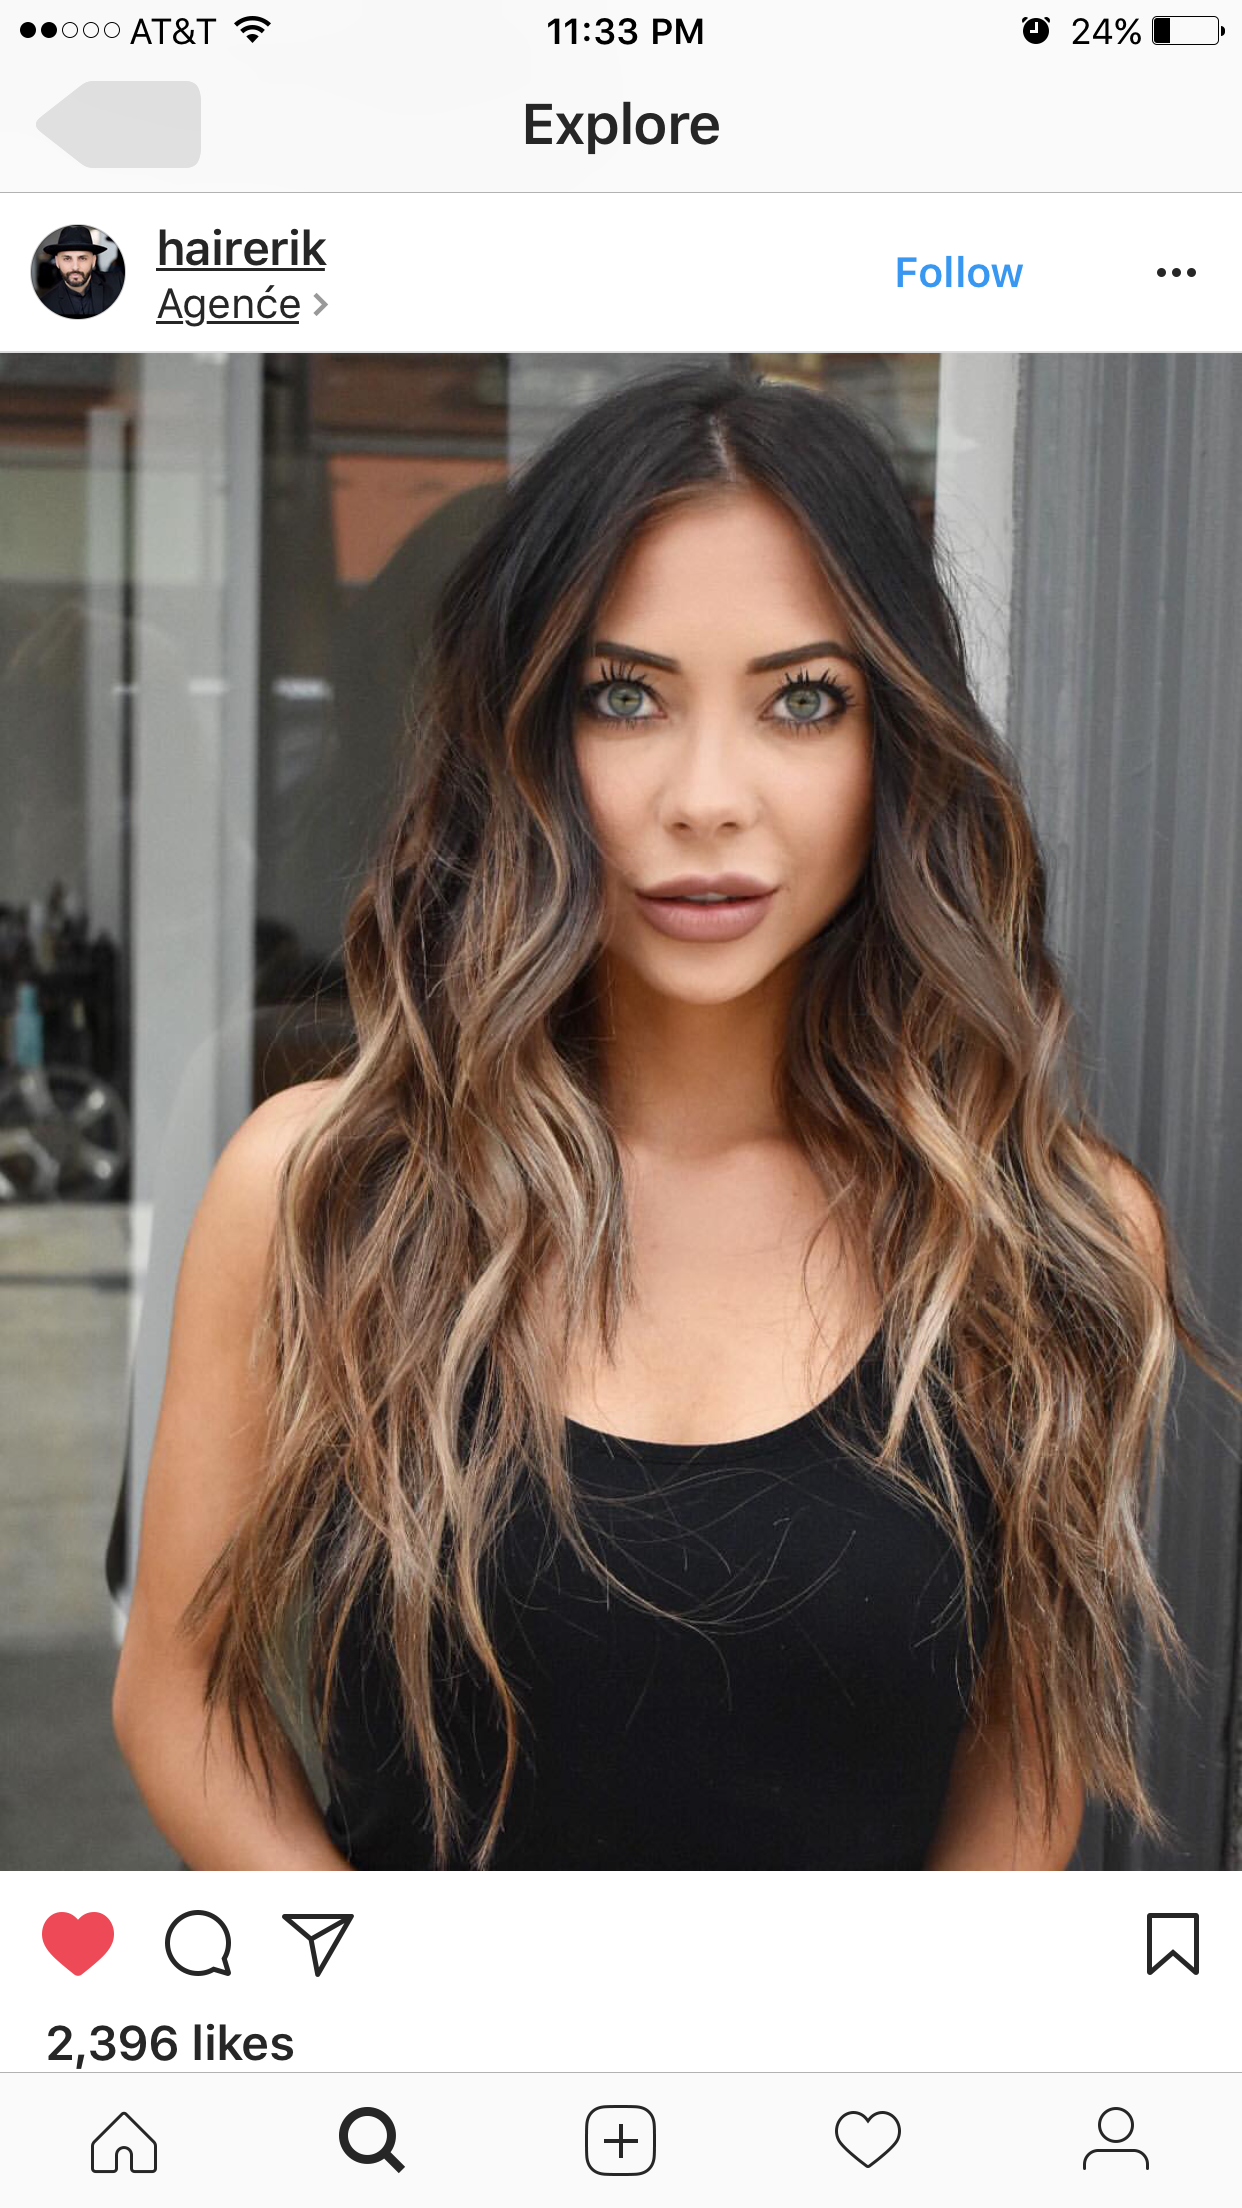 Beautiful women with matching beautiful hair and eyes bronde